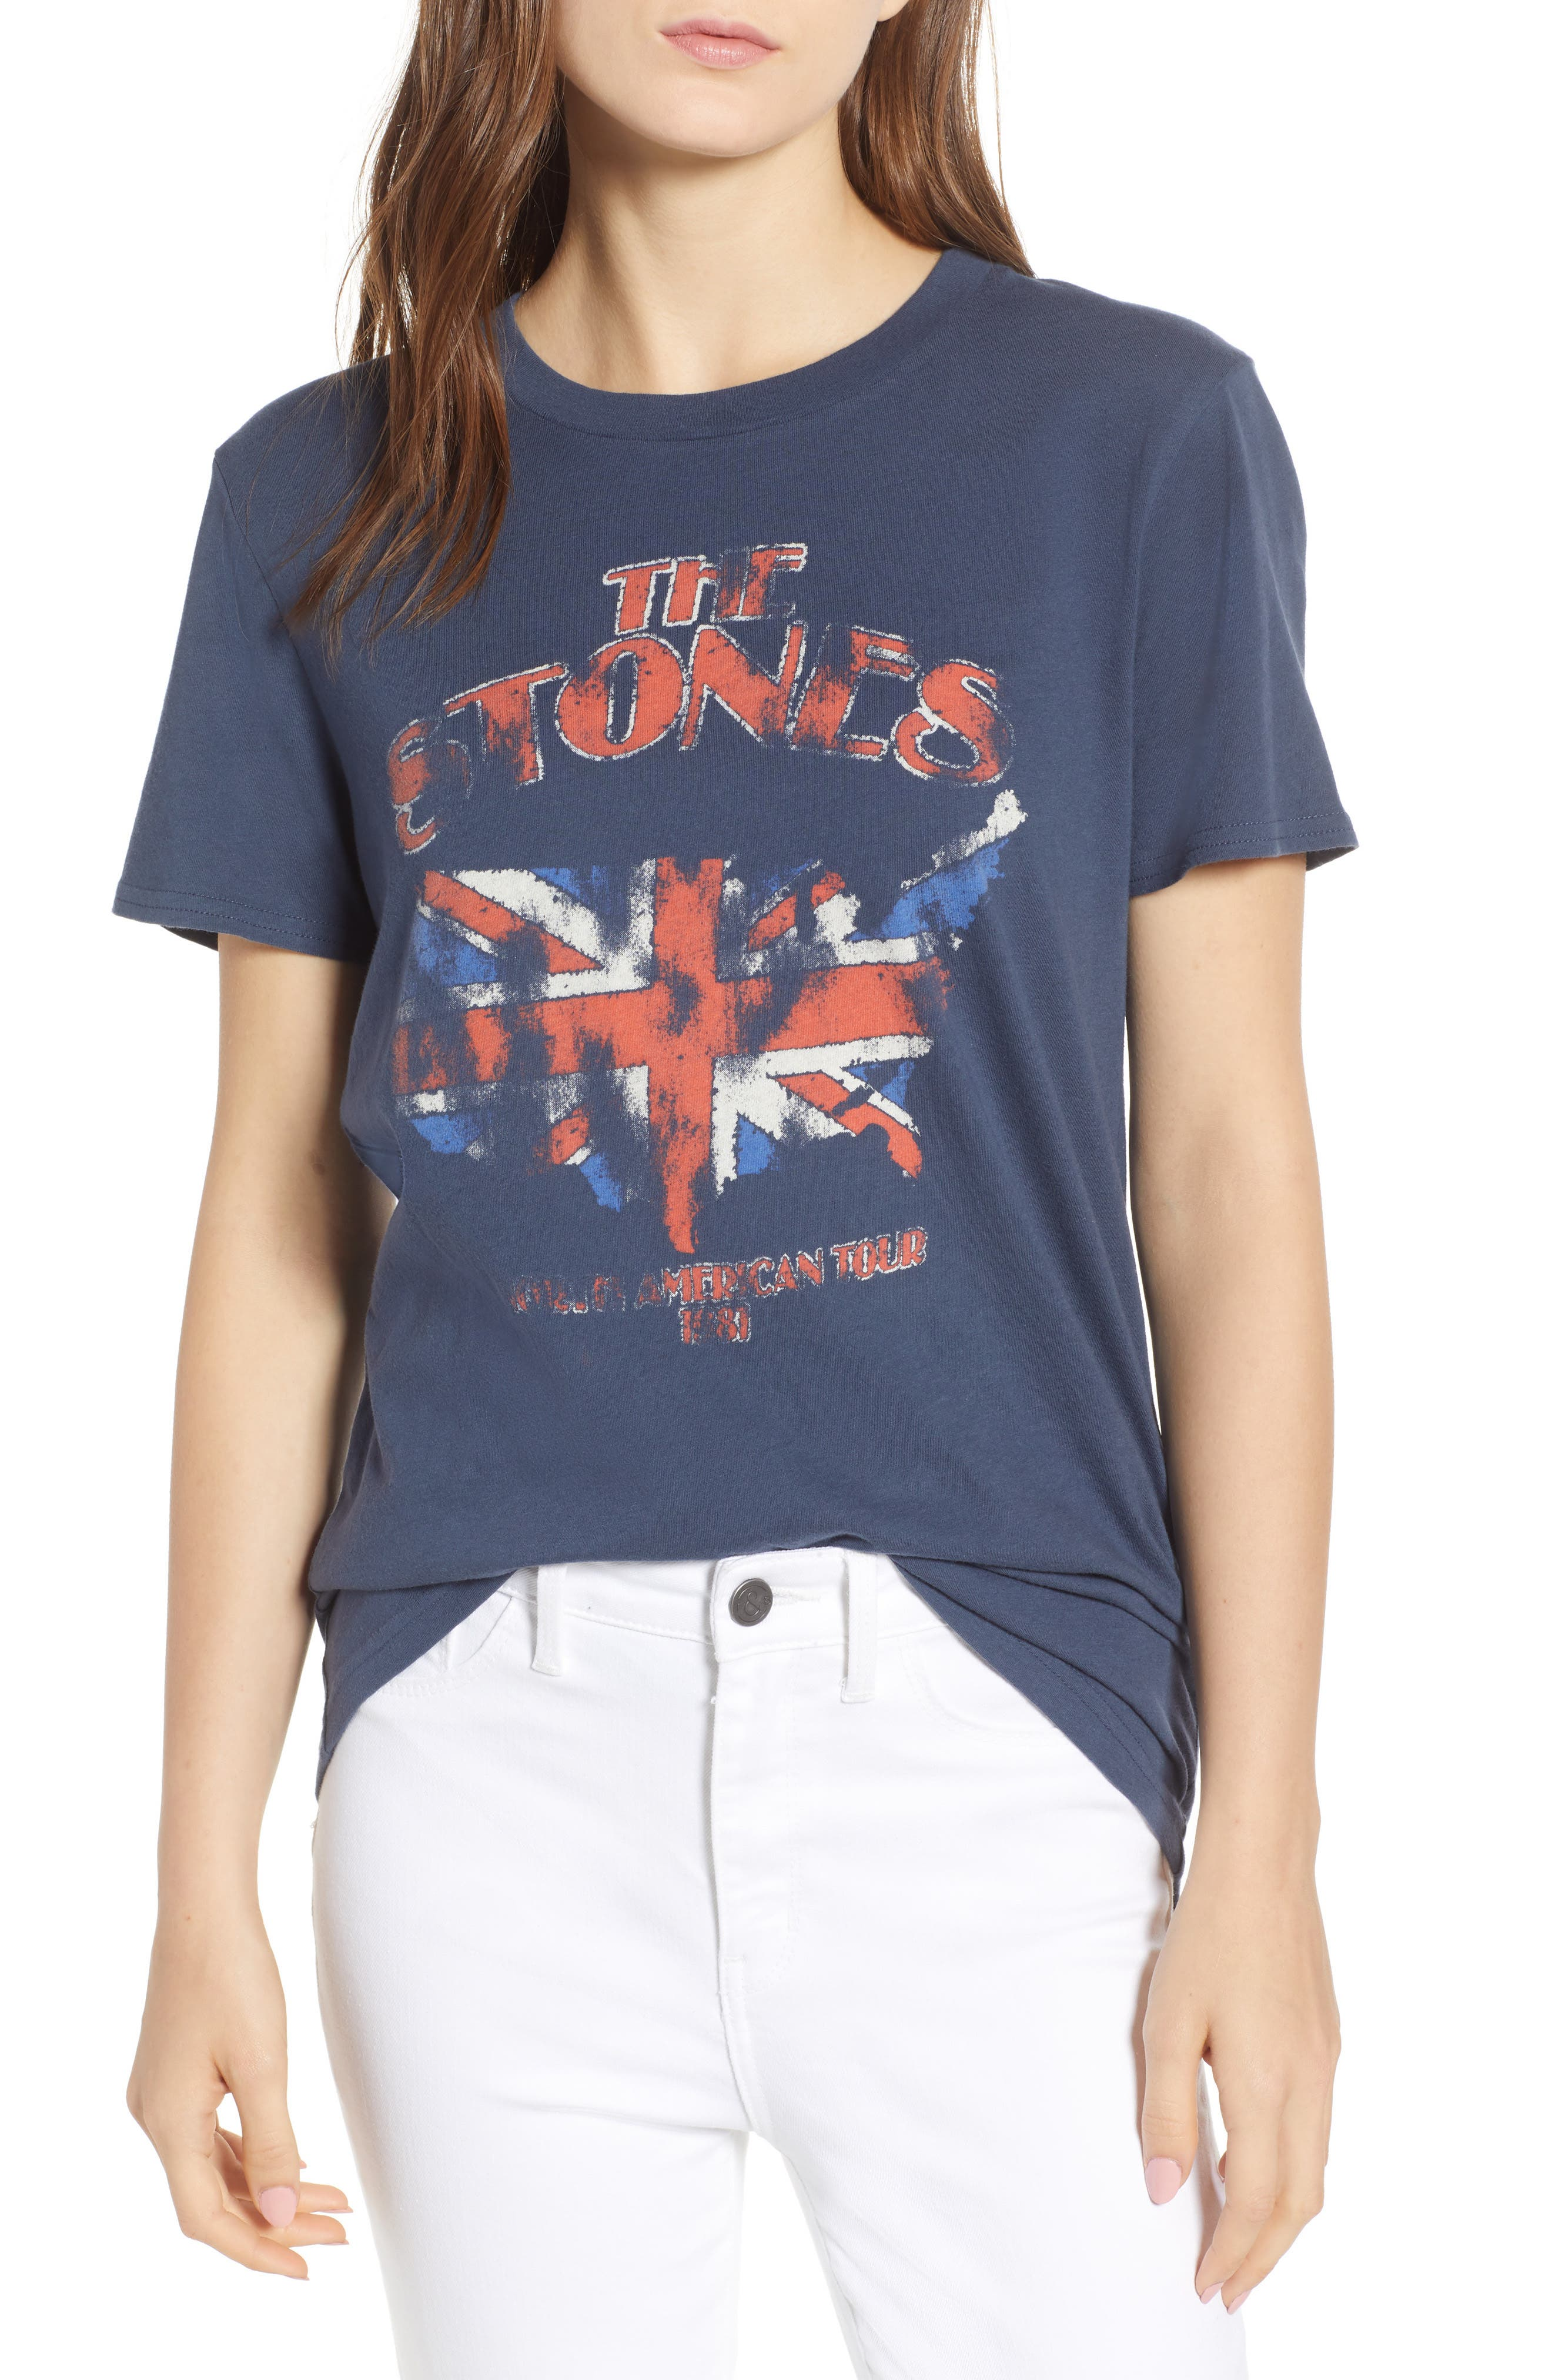 The Stones Graphic Tee,                         Main,                         color, Navy Blue Combo